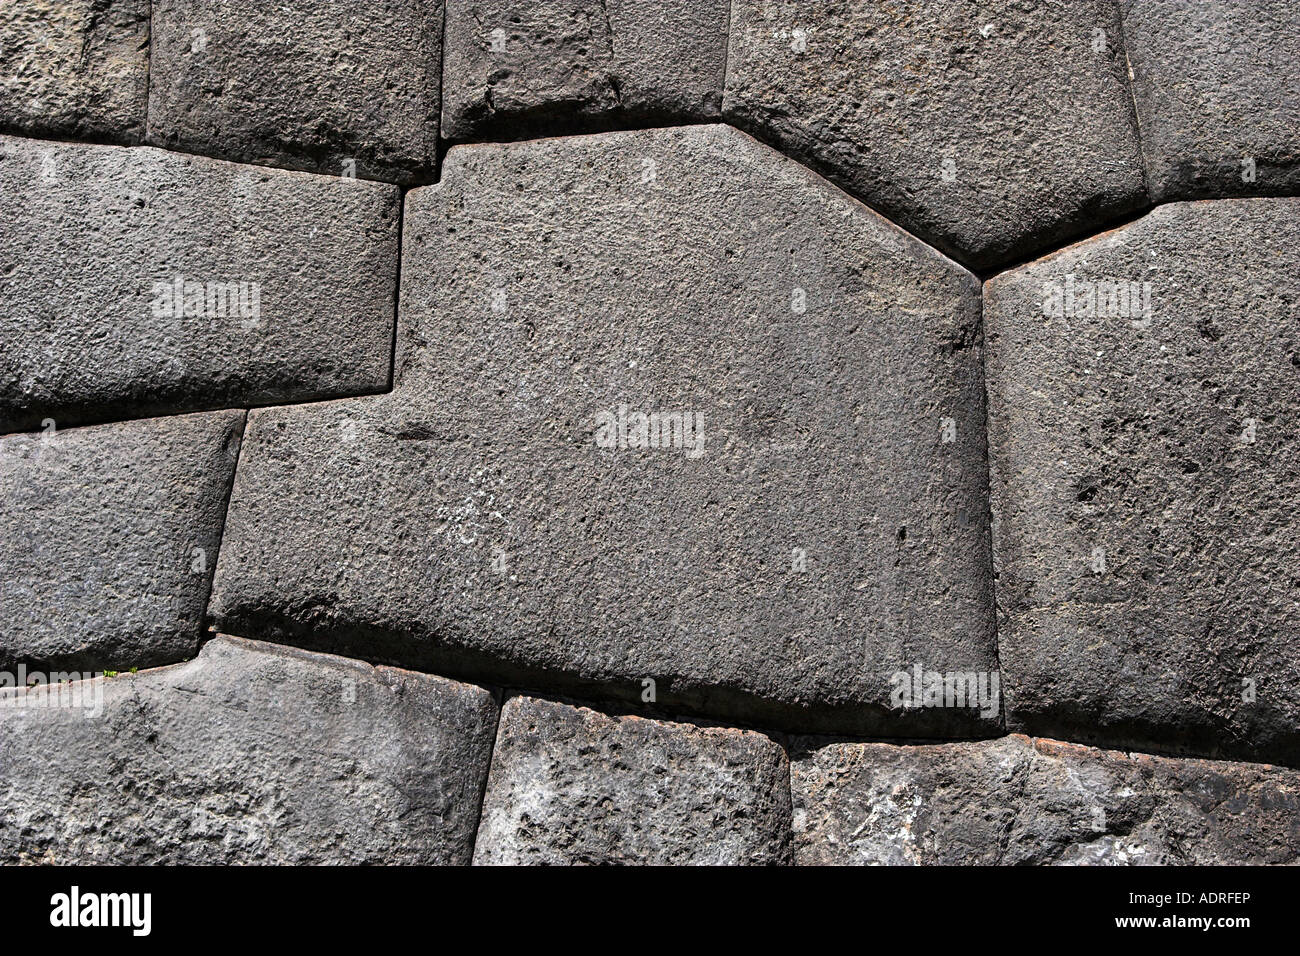 Ancient Stone Wall : Inca stonework quot close up detail of ancient stone wall